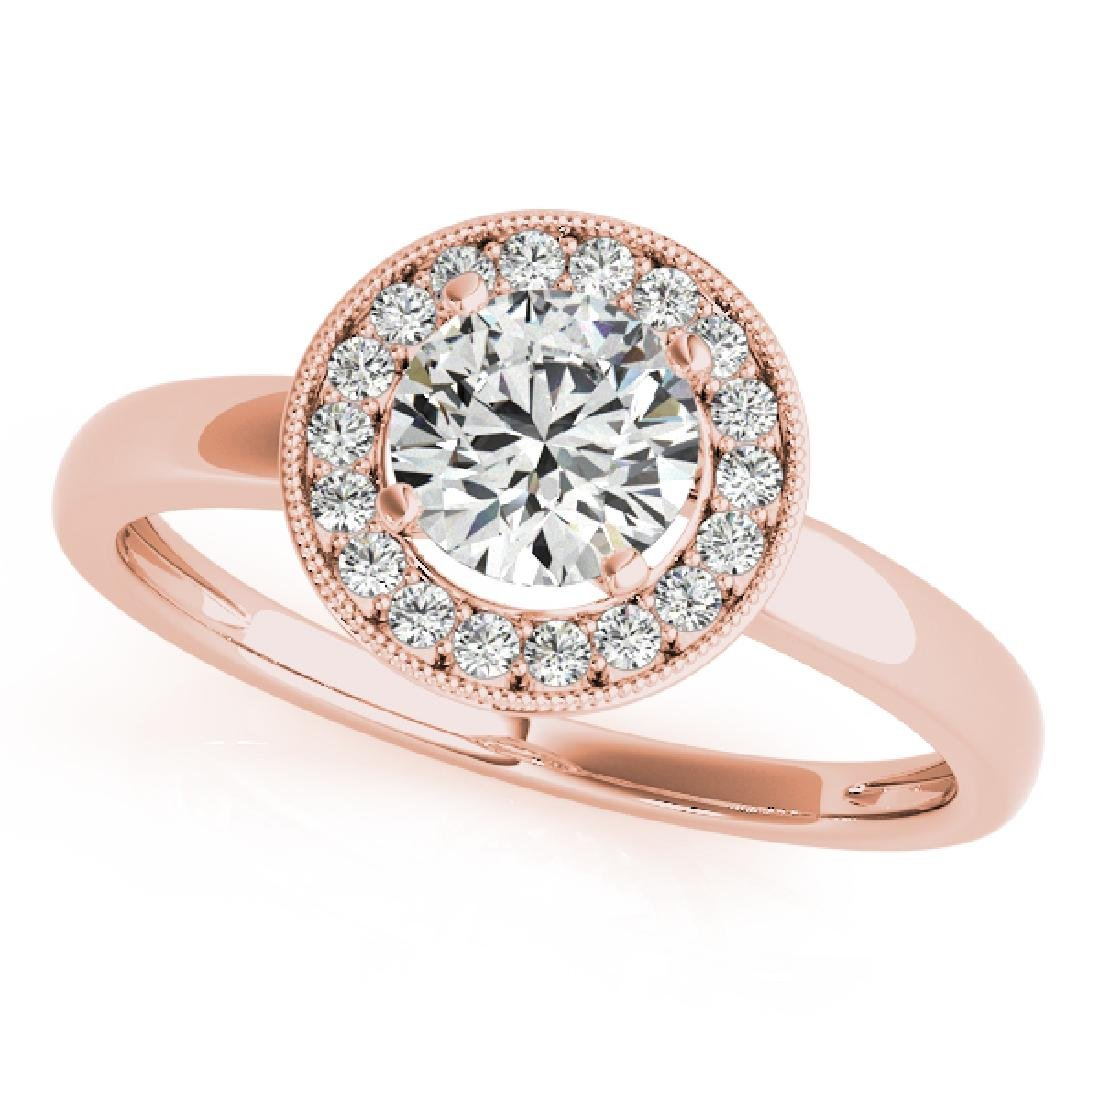 CERTIFIED 18K ROSE GOLD 1.36 CT G-H/VS-SI1 DIAMOND HALO